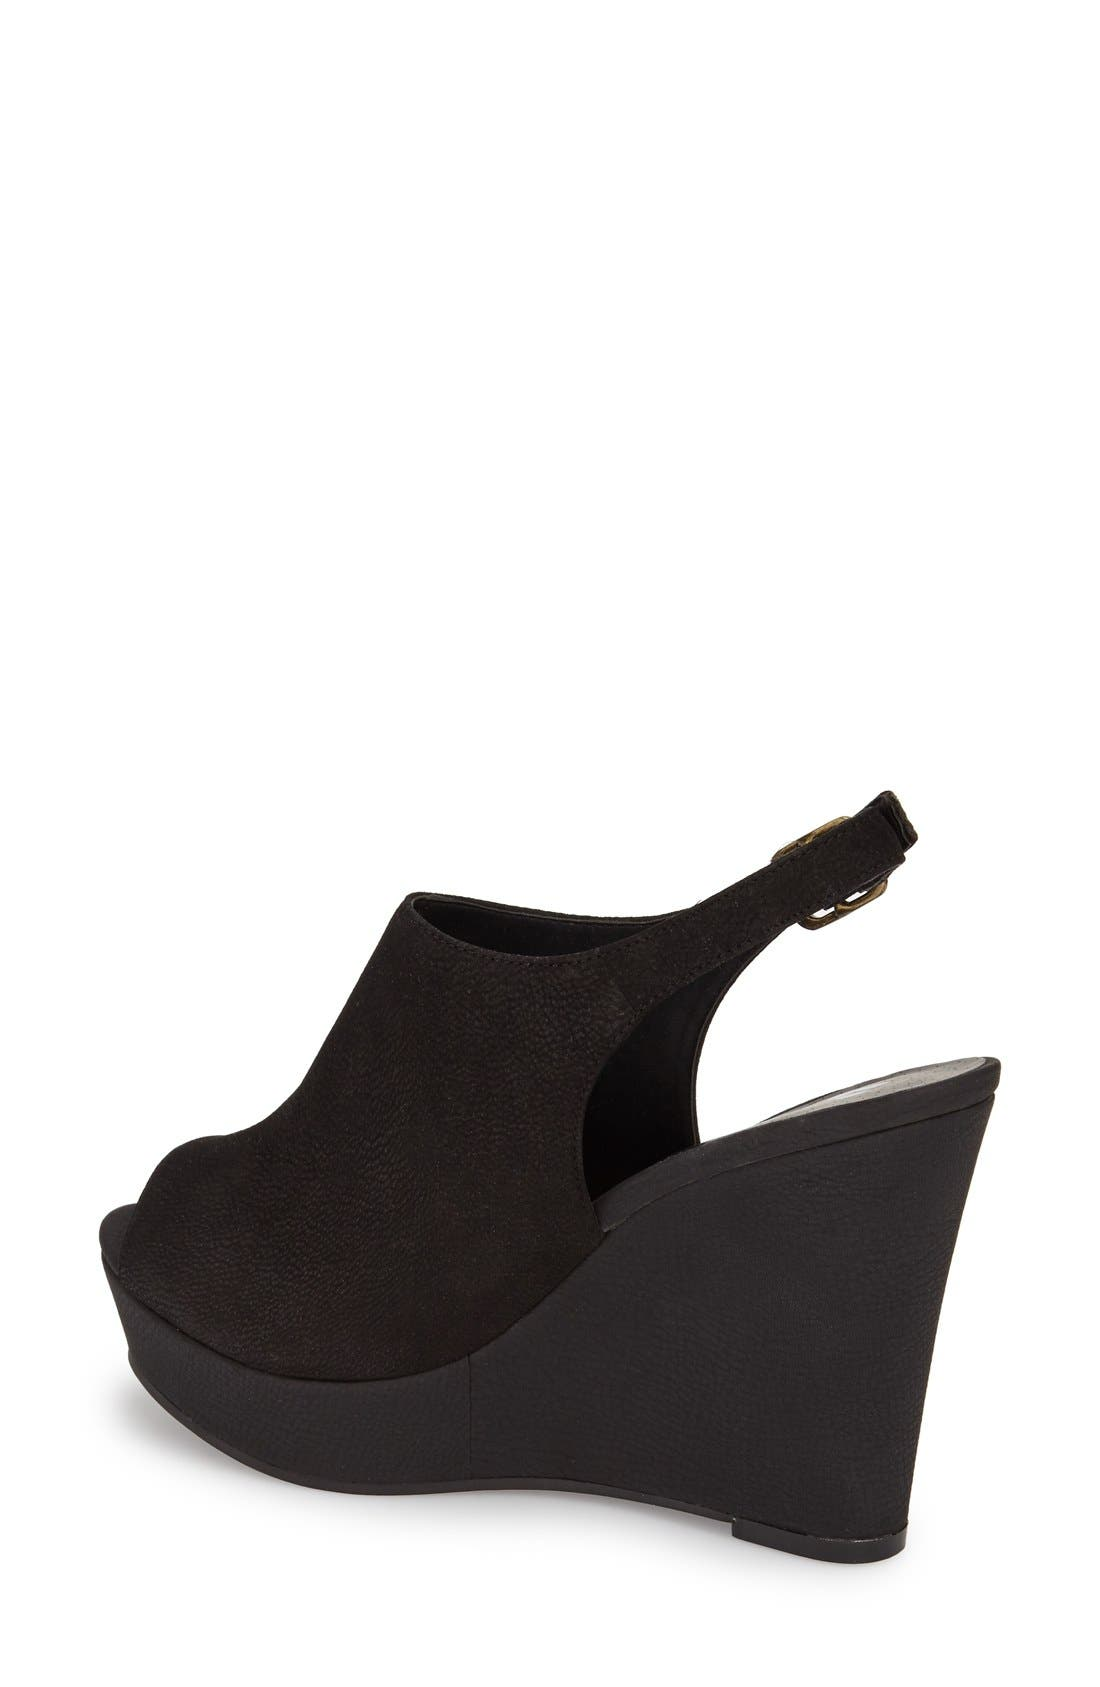 'Roundabout' Slingback Peep Toe Wedge,                             Alternate thumbnail 3, color,                             001